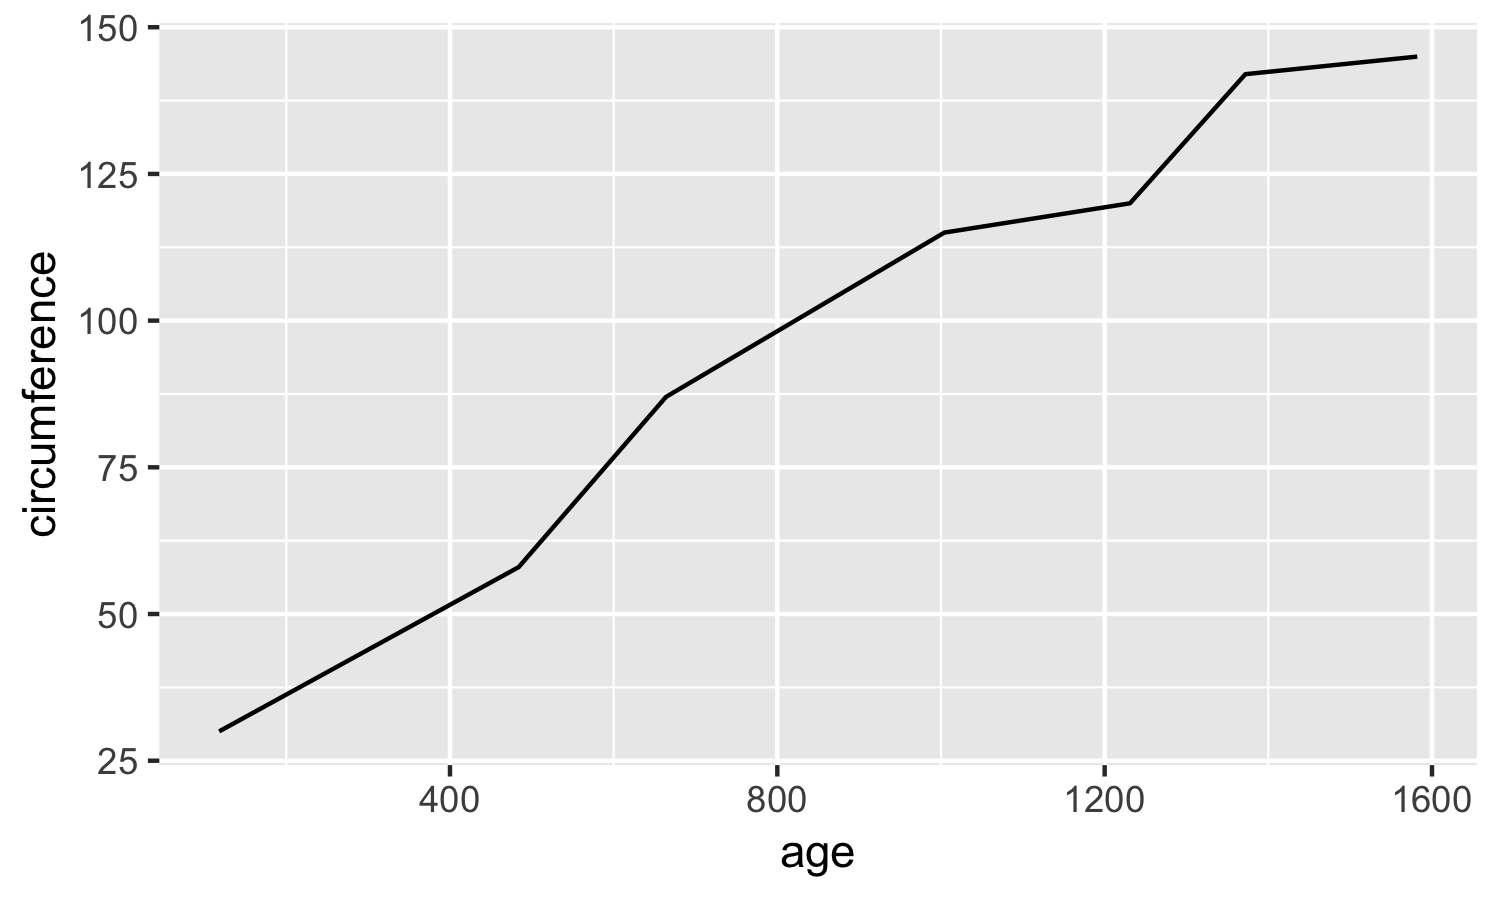 A Detailed Guide to Plotting Line Graphs in R using ggplot geom_line